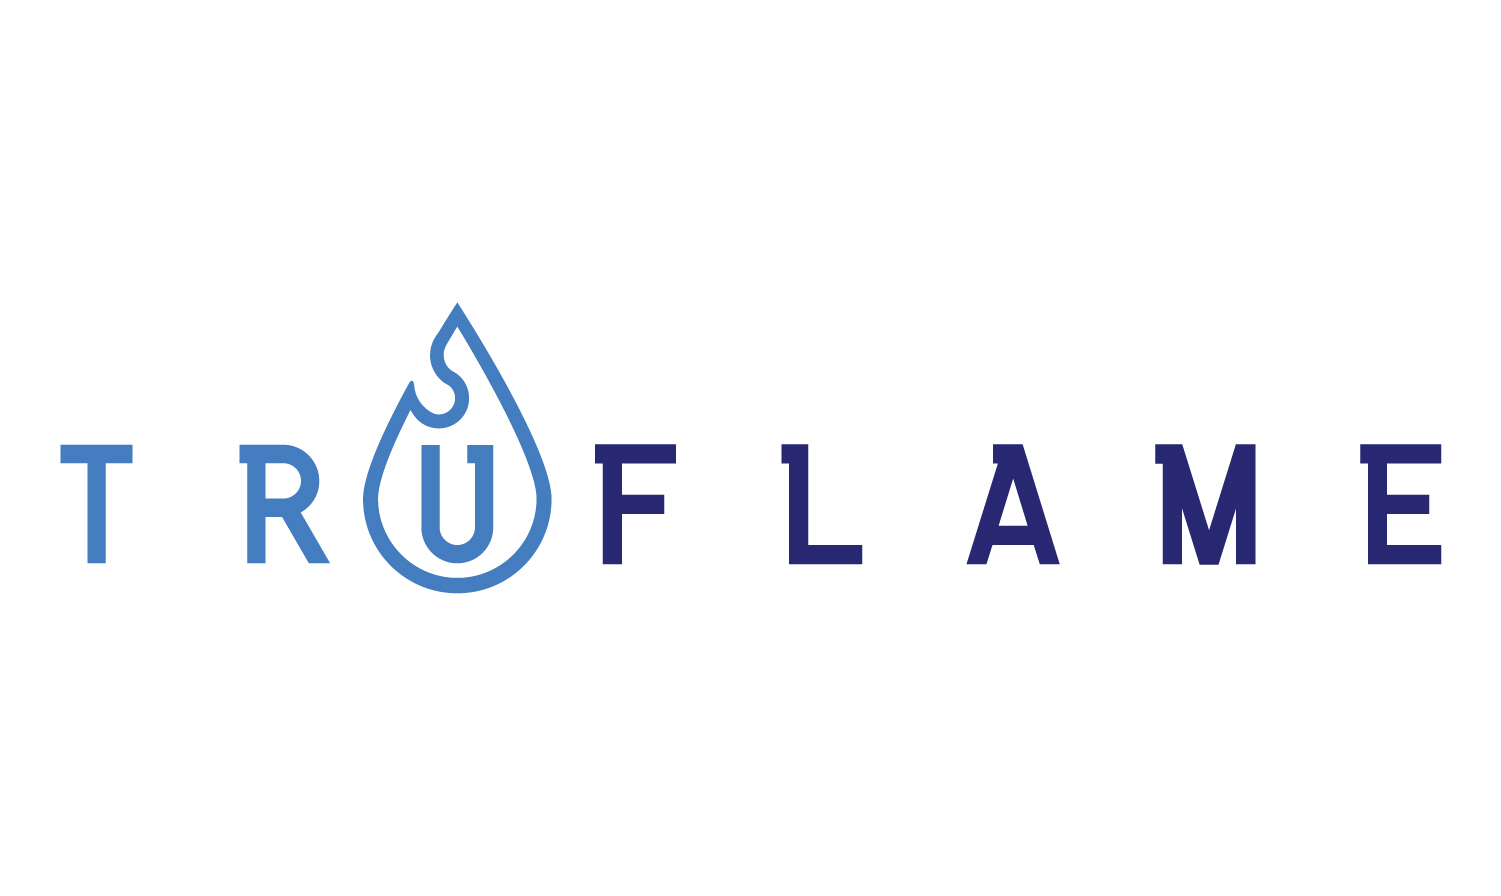 TruFlame Gas Company -CHAMBER MEMBER – Screven County Chamber of on electric lamp, electric bird feeder, electric seeder, electric pedestal, electric auger, electric frame, electric picker, electric gates, electric scraper, electric desk, electric trailer, electric snow blower, electric drill, electric glass,